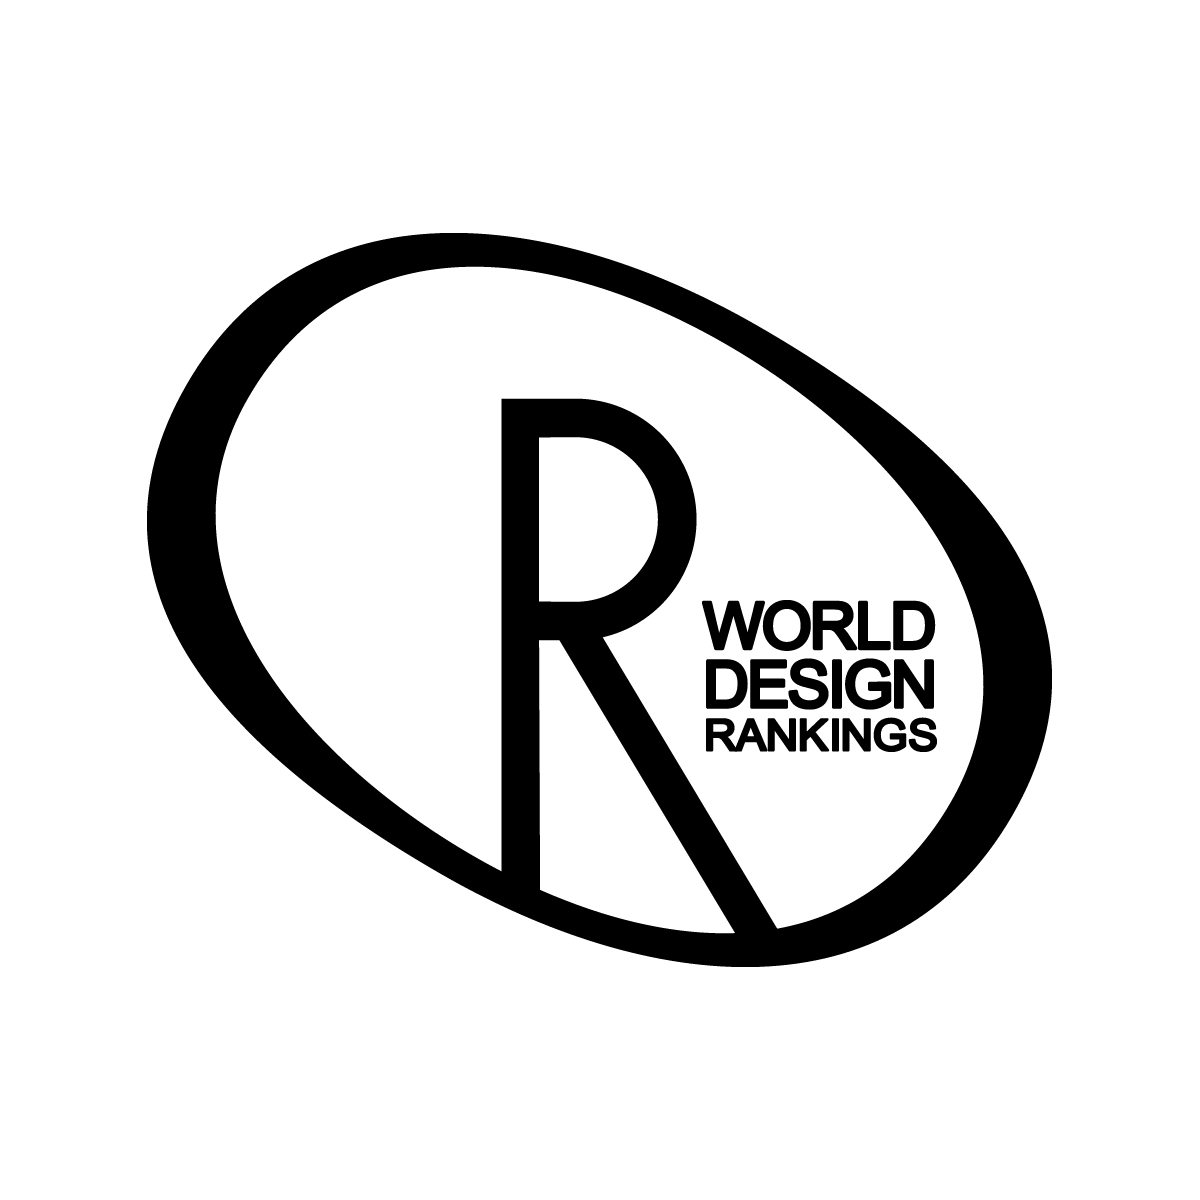 world-design-rankings-logo-new.png